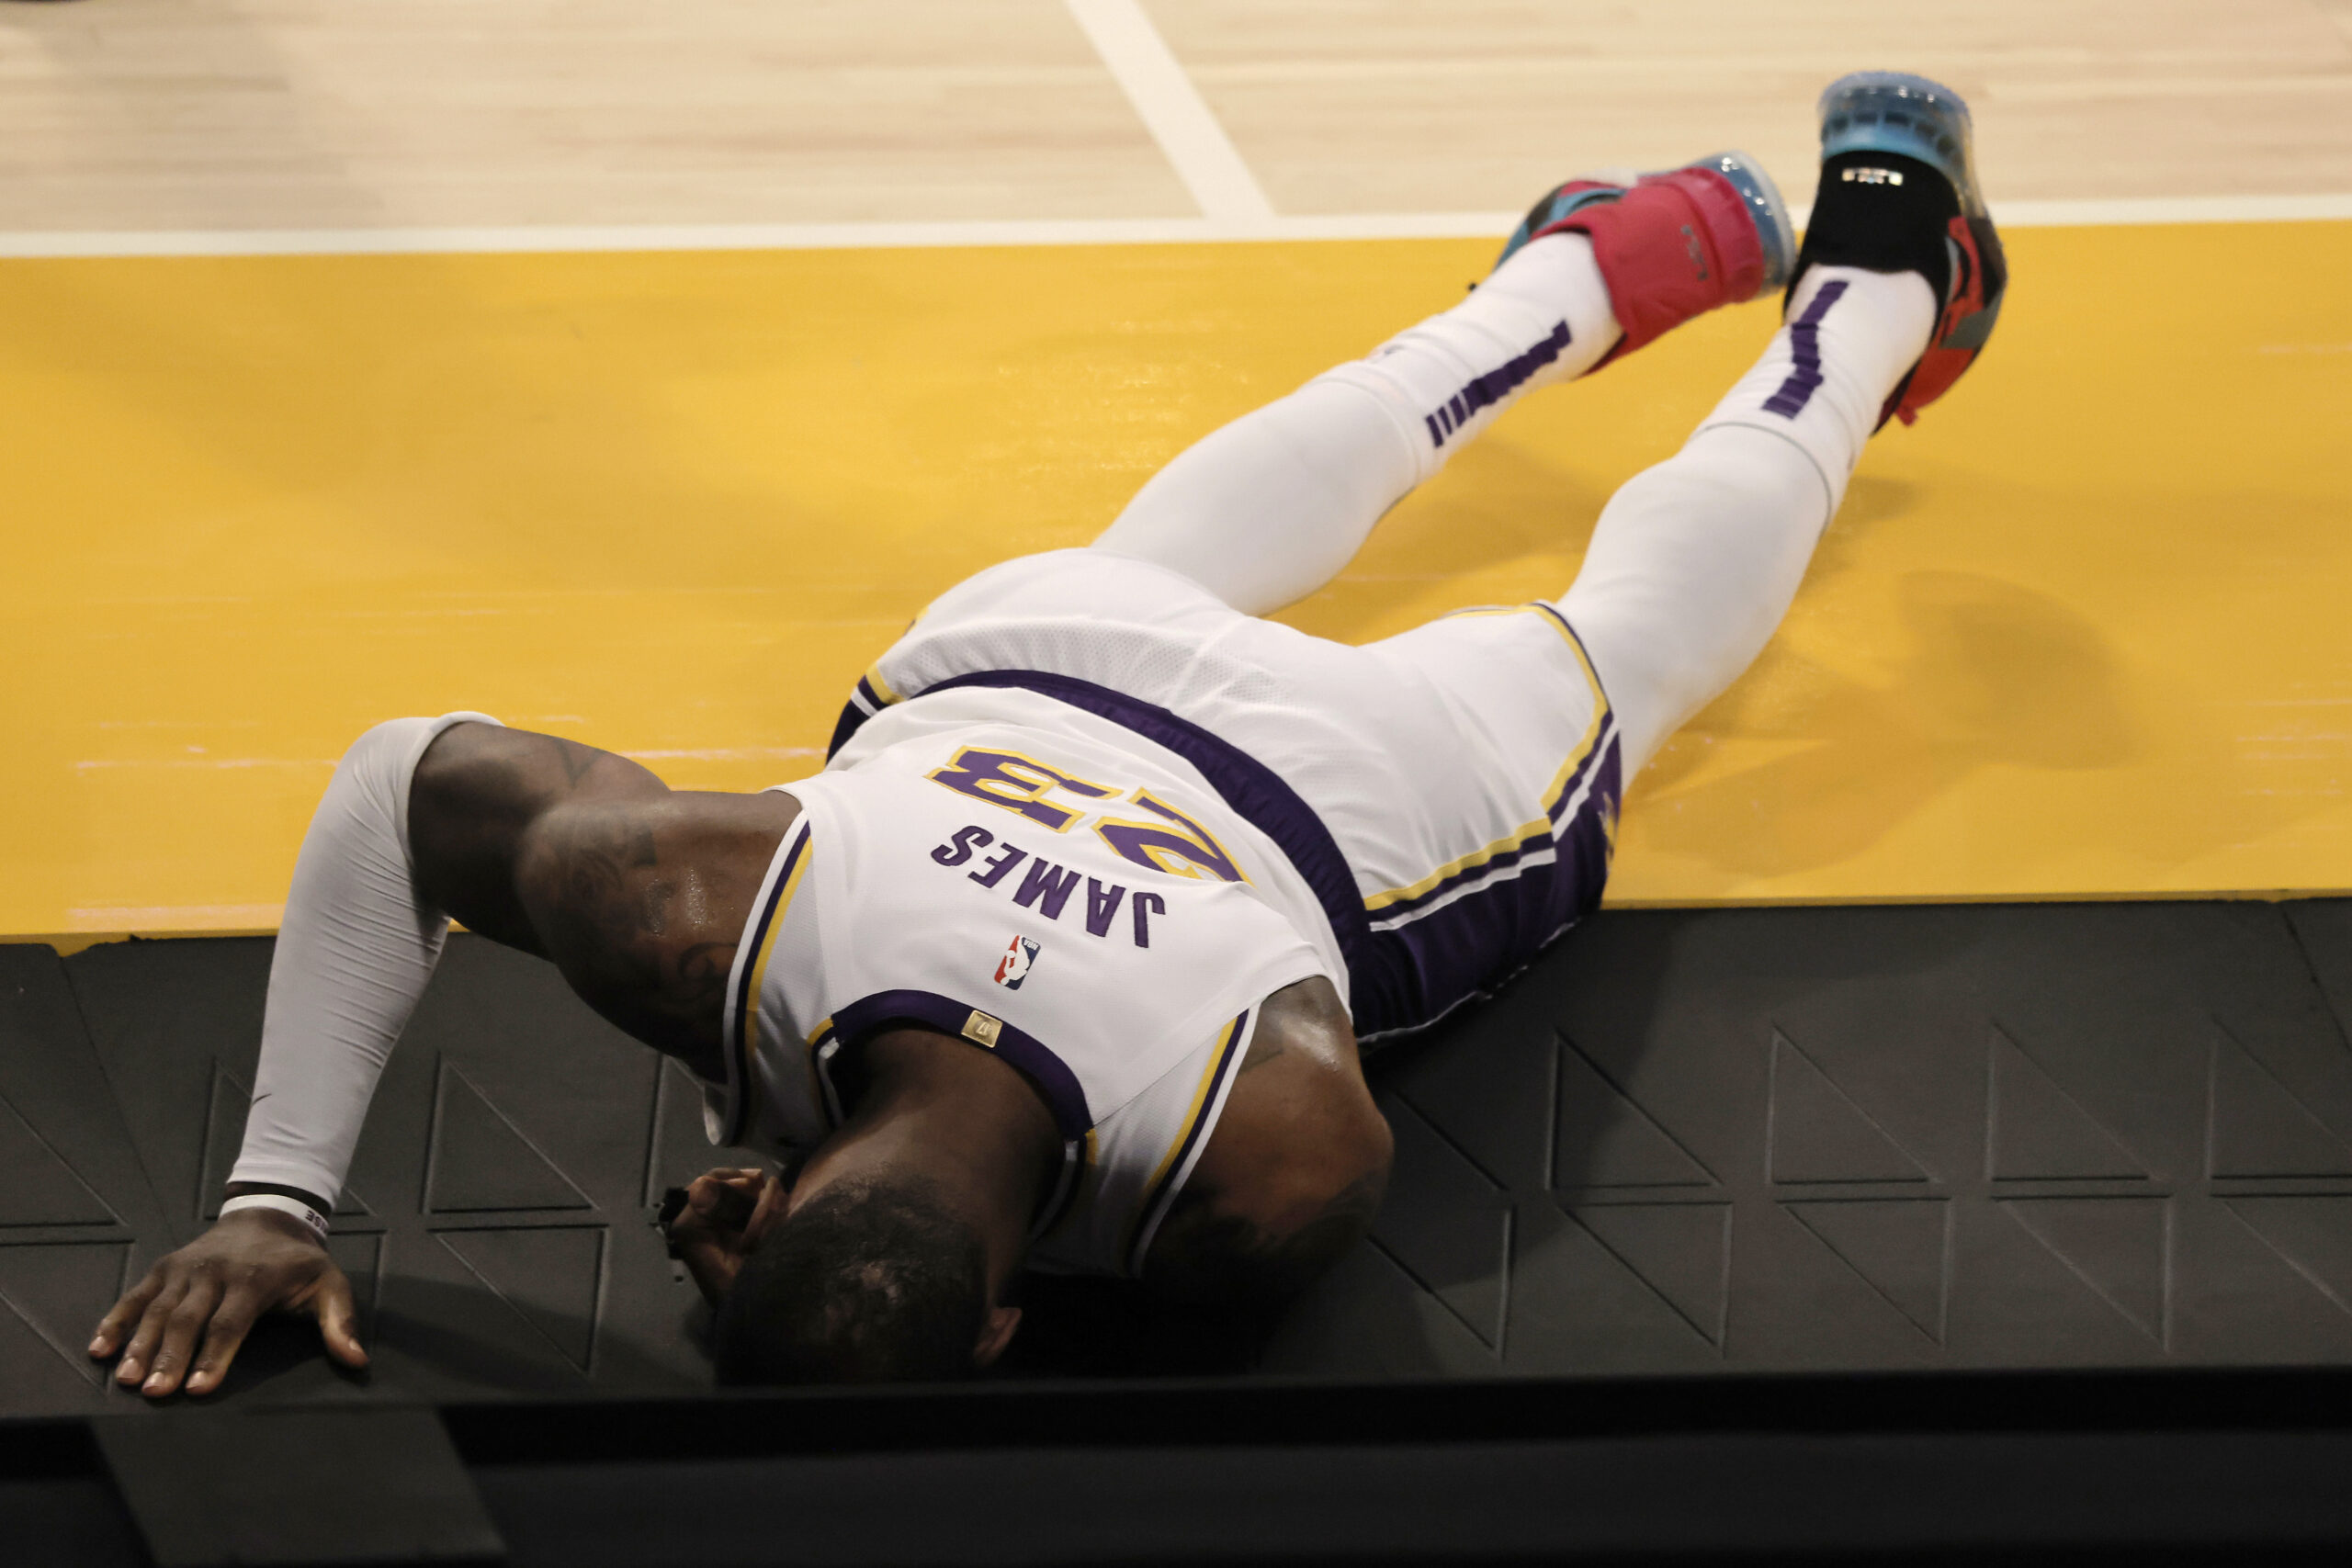 JUST IN: LeBron James Reportedly Out Indefinitely After High Right Ankle Sprain